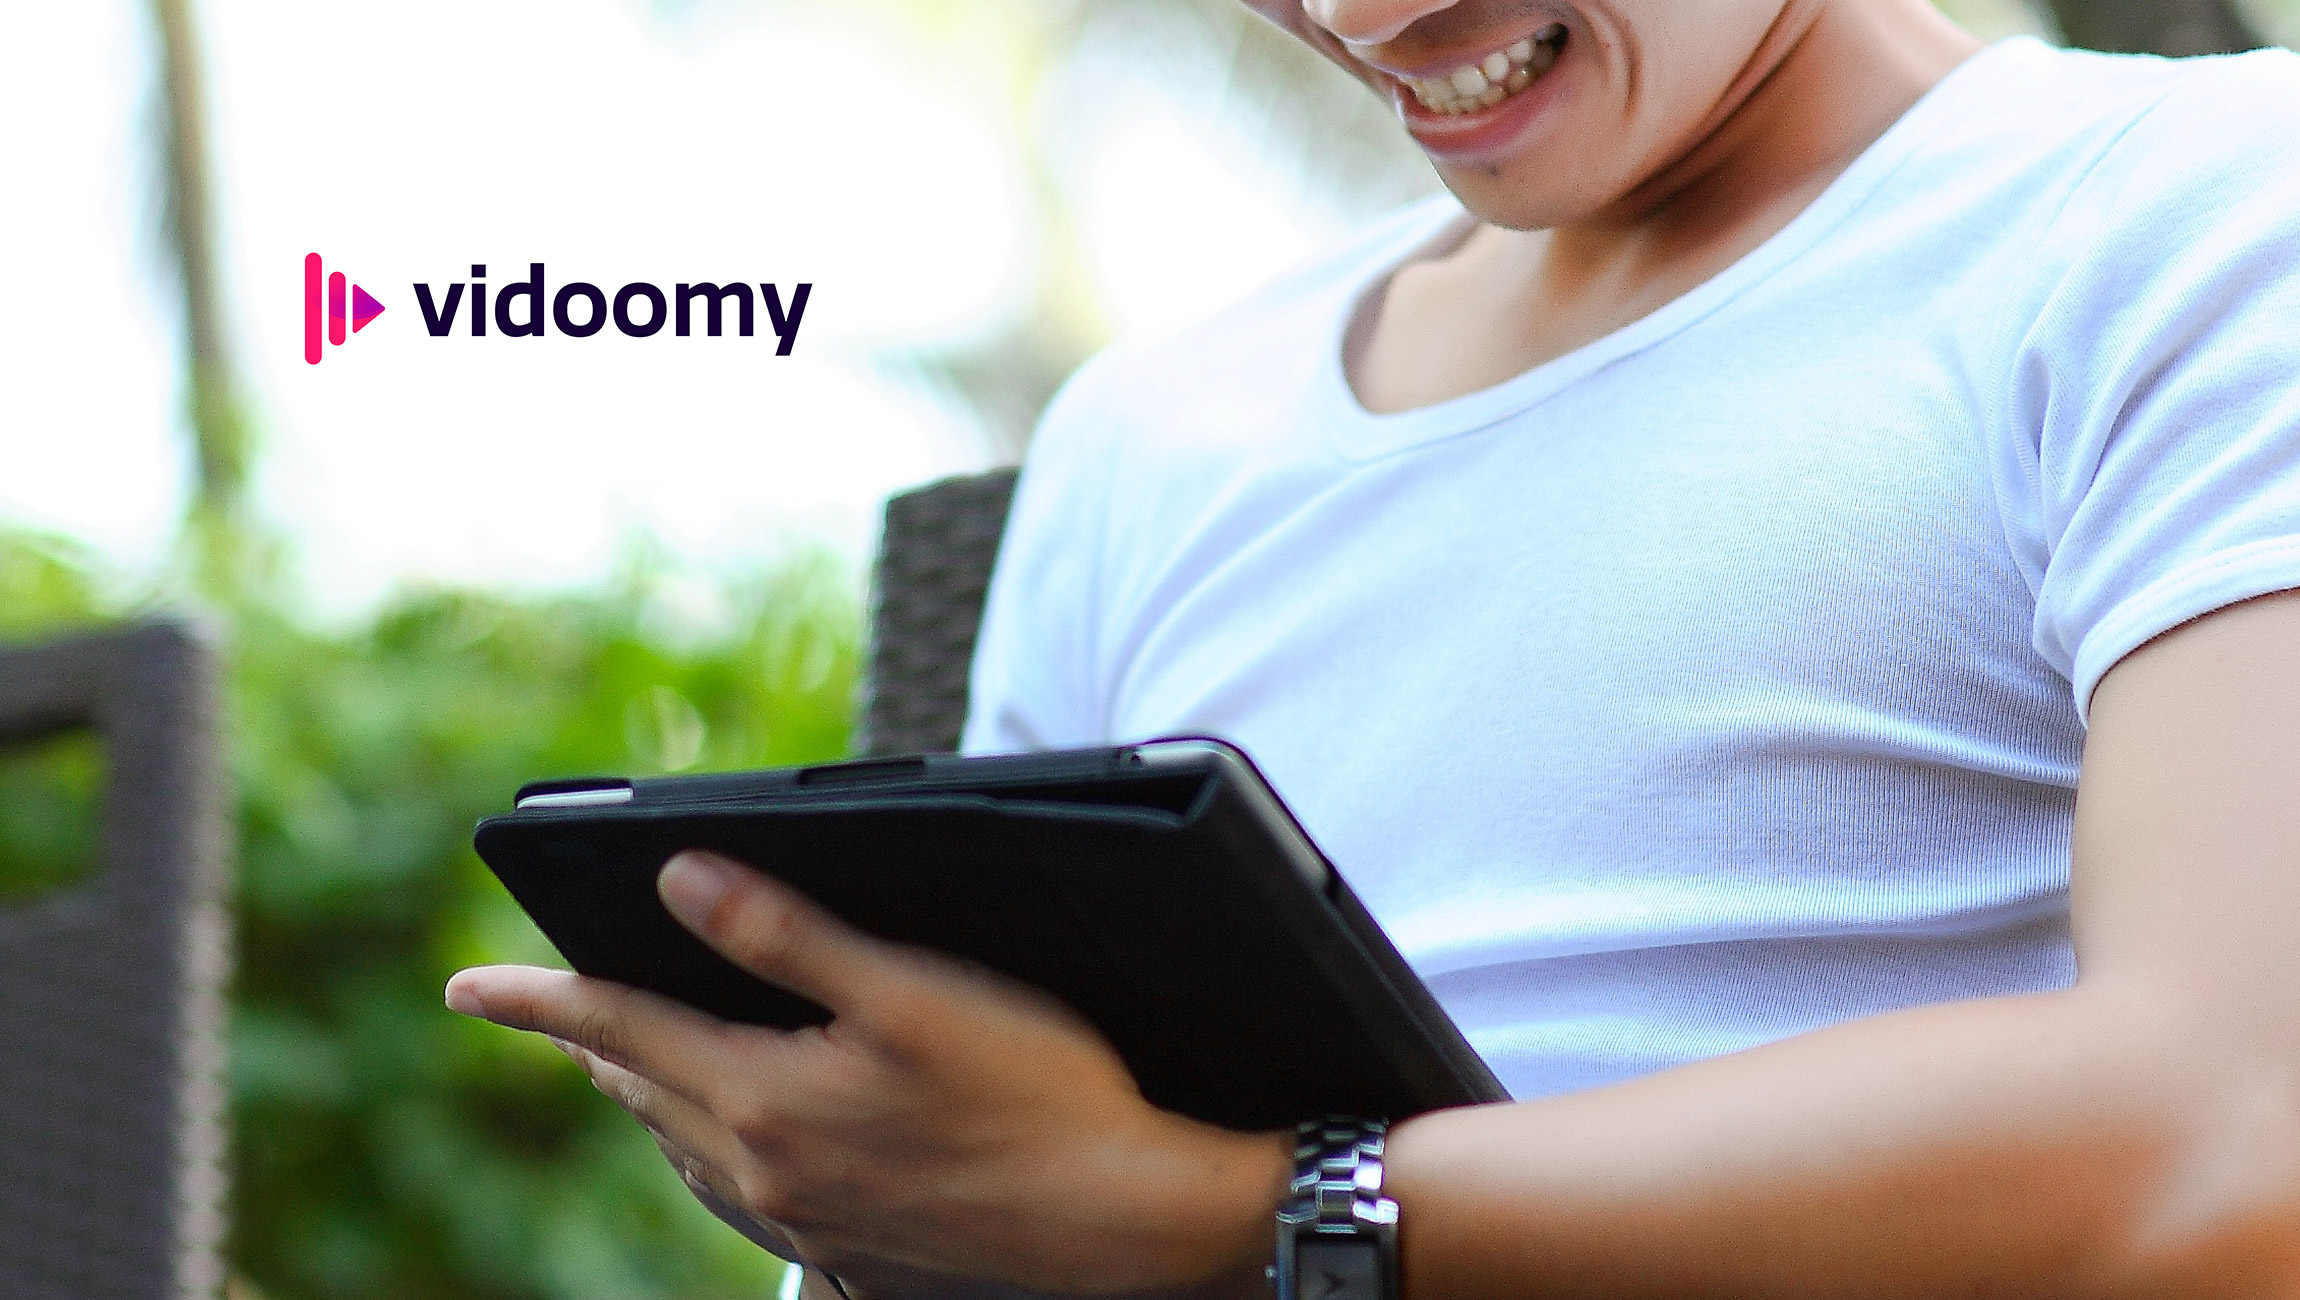 Vidoomy Starts a Revolution With Completely Interactive Video Advertising